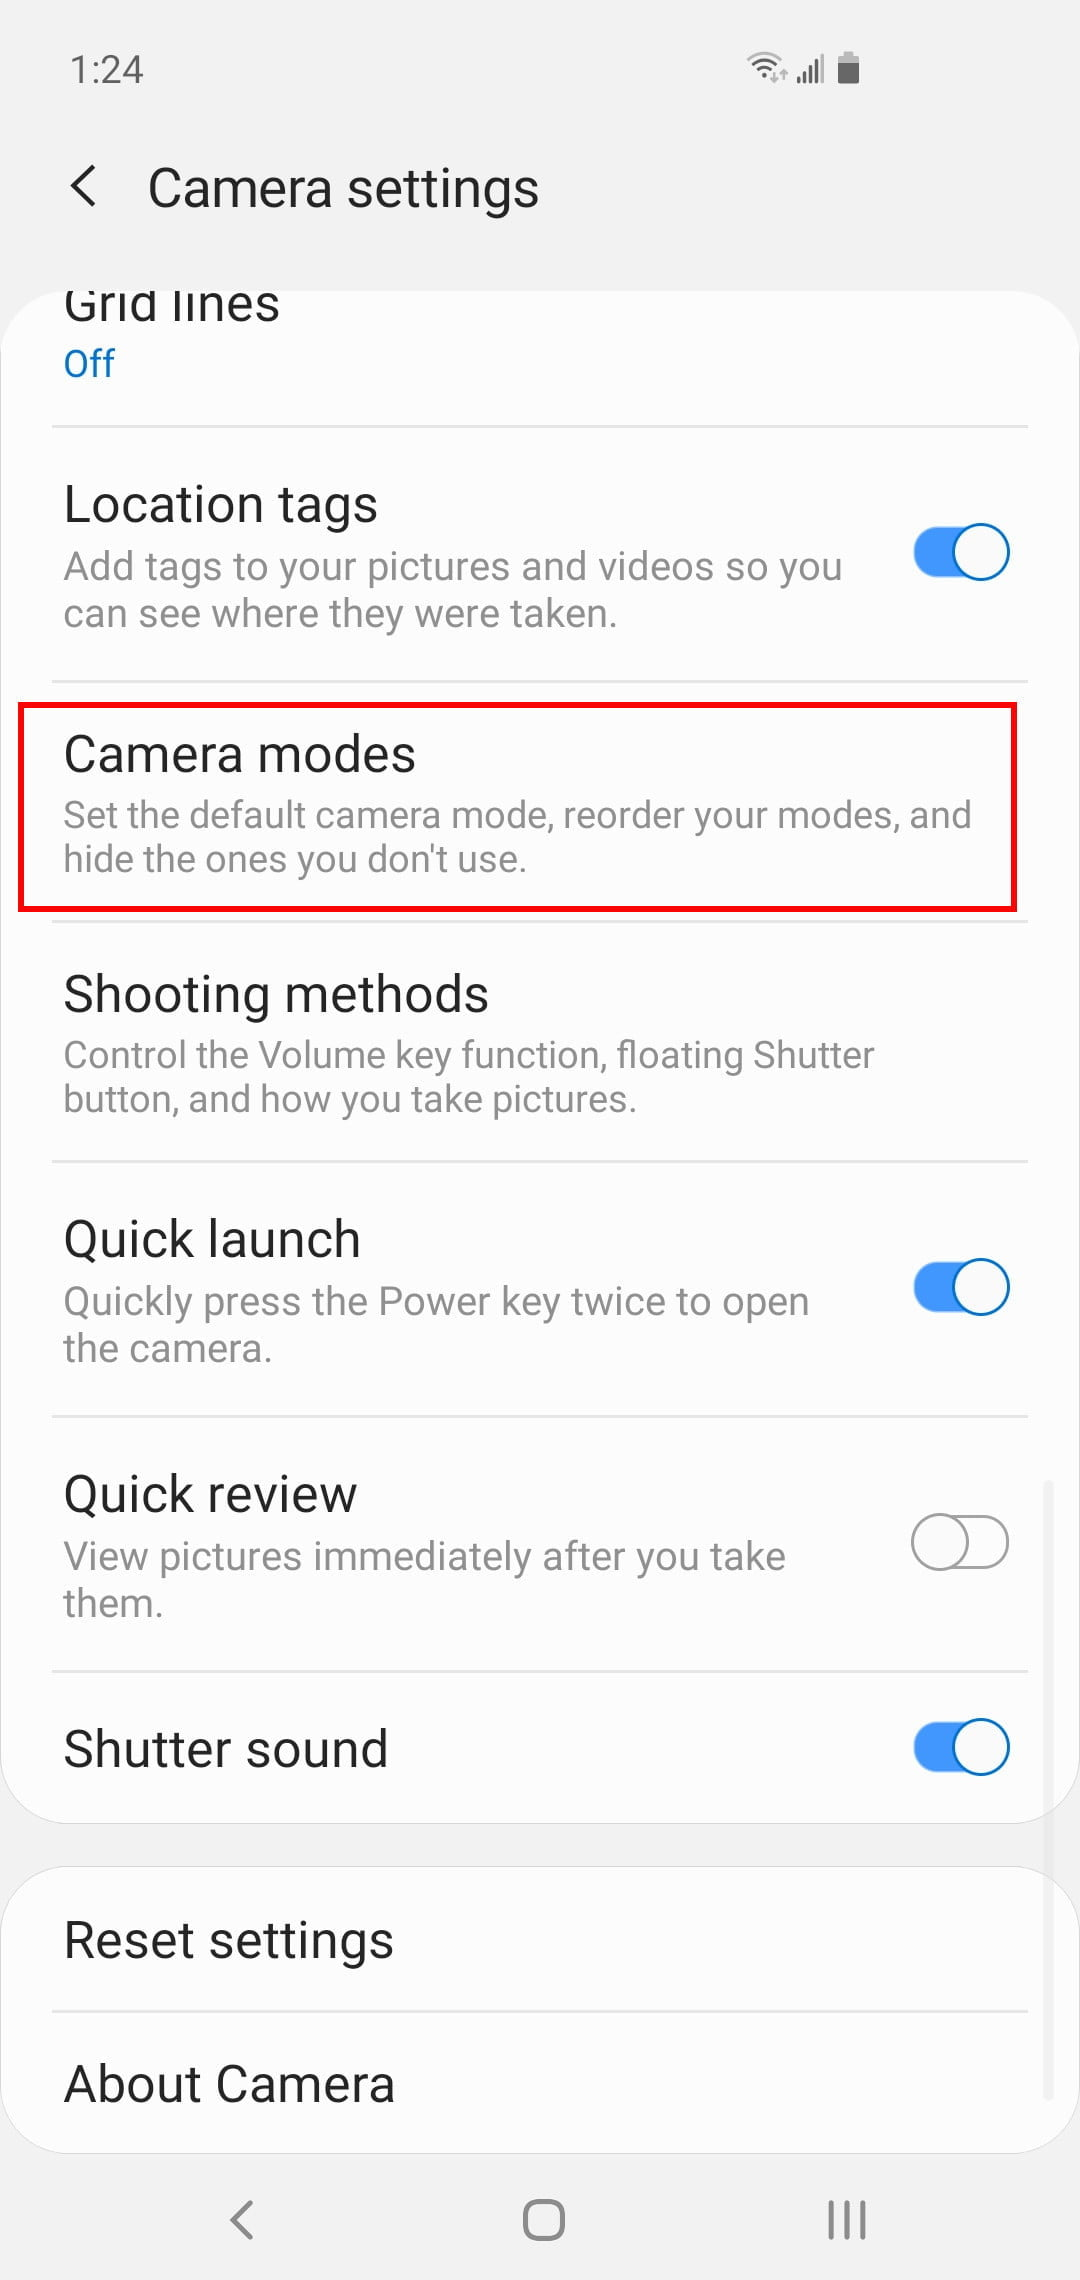 Samsung Galaxy S10 Camera Guide: How to Take Amazing Photos